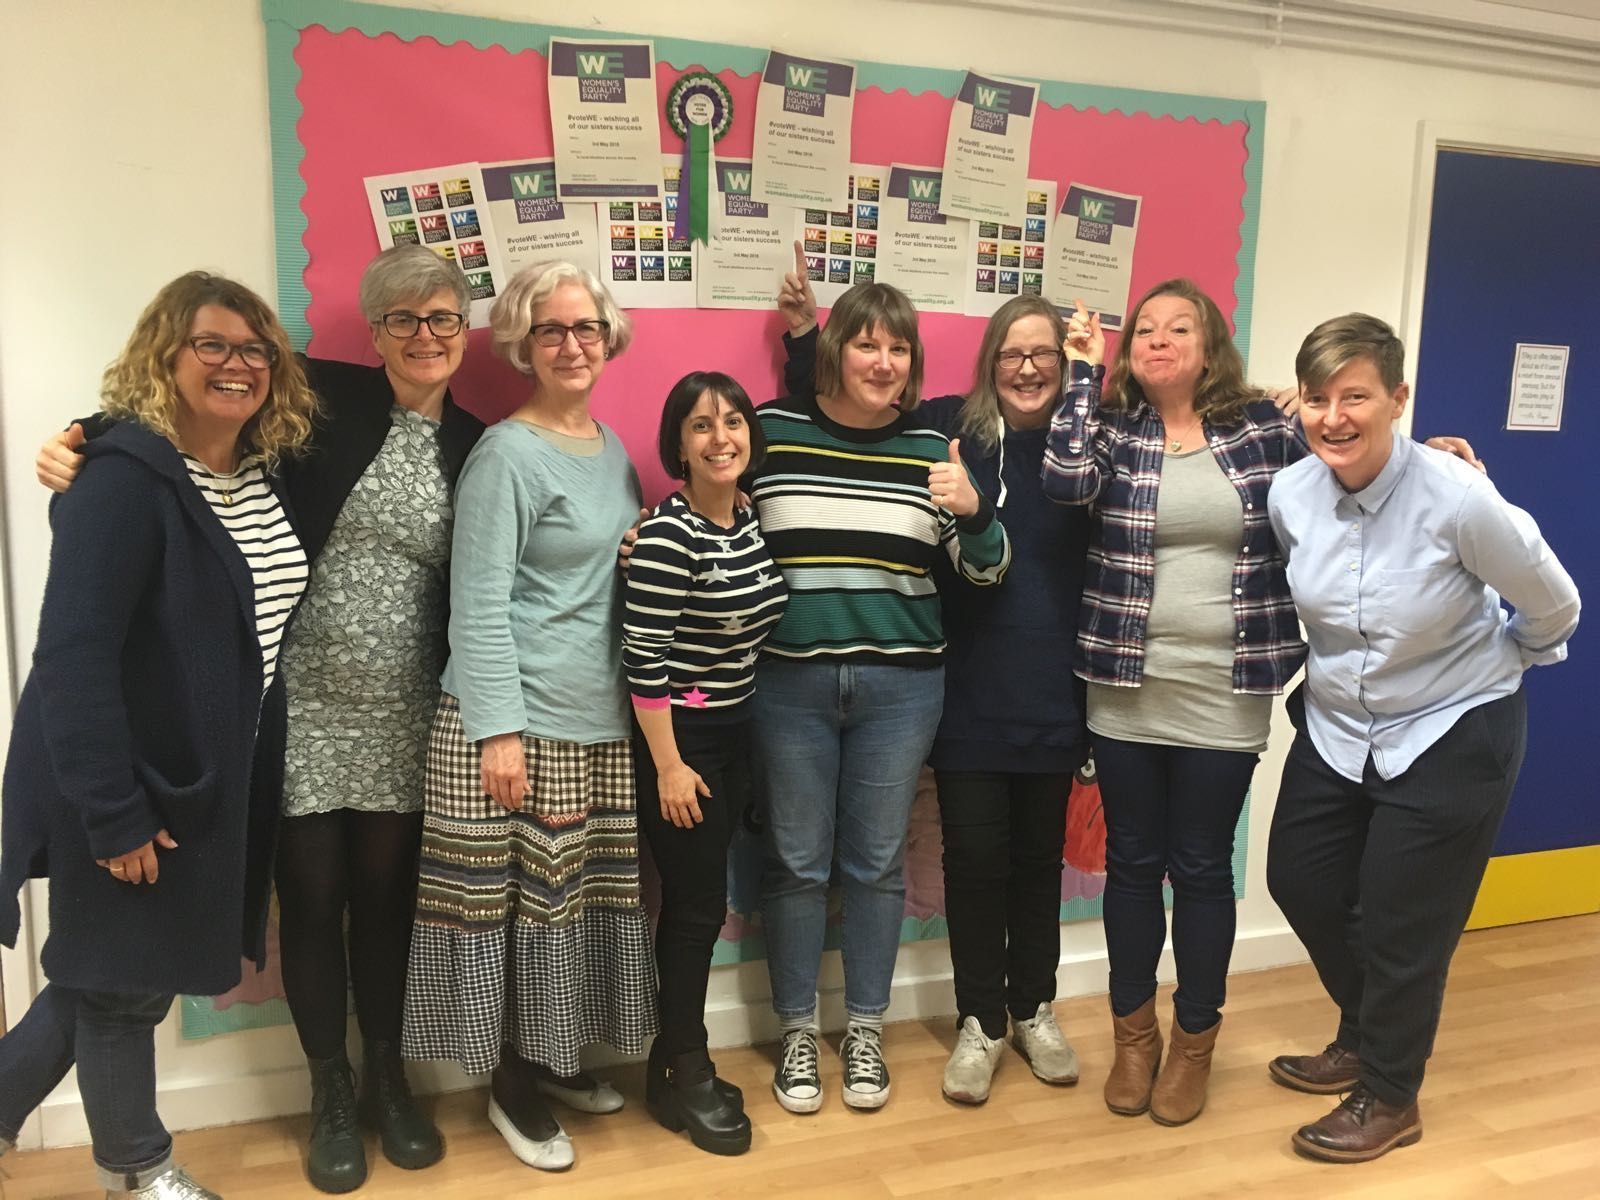 Women's Equality Party Hove & Portslade - Sister Society blog.jpg